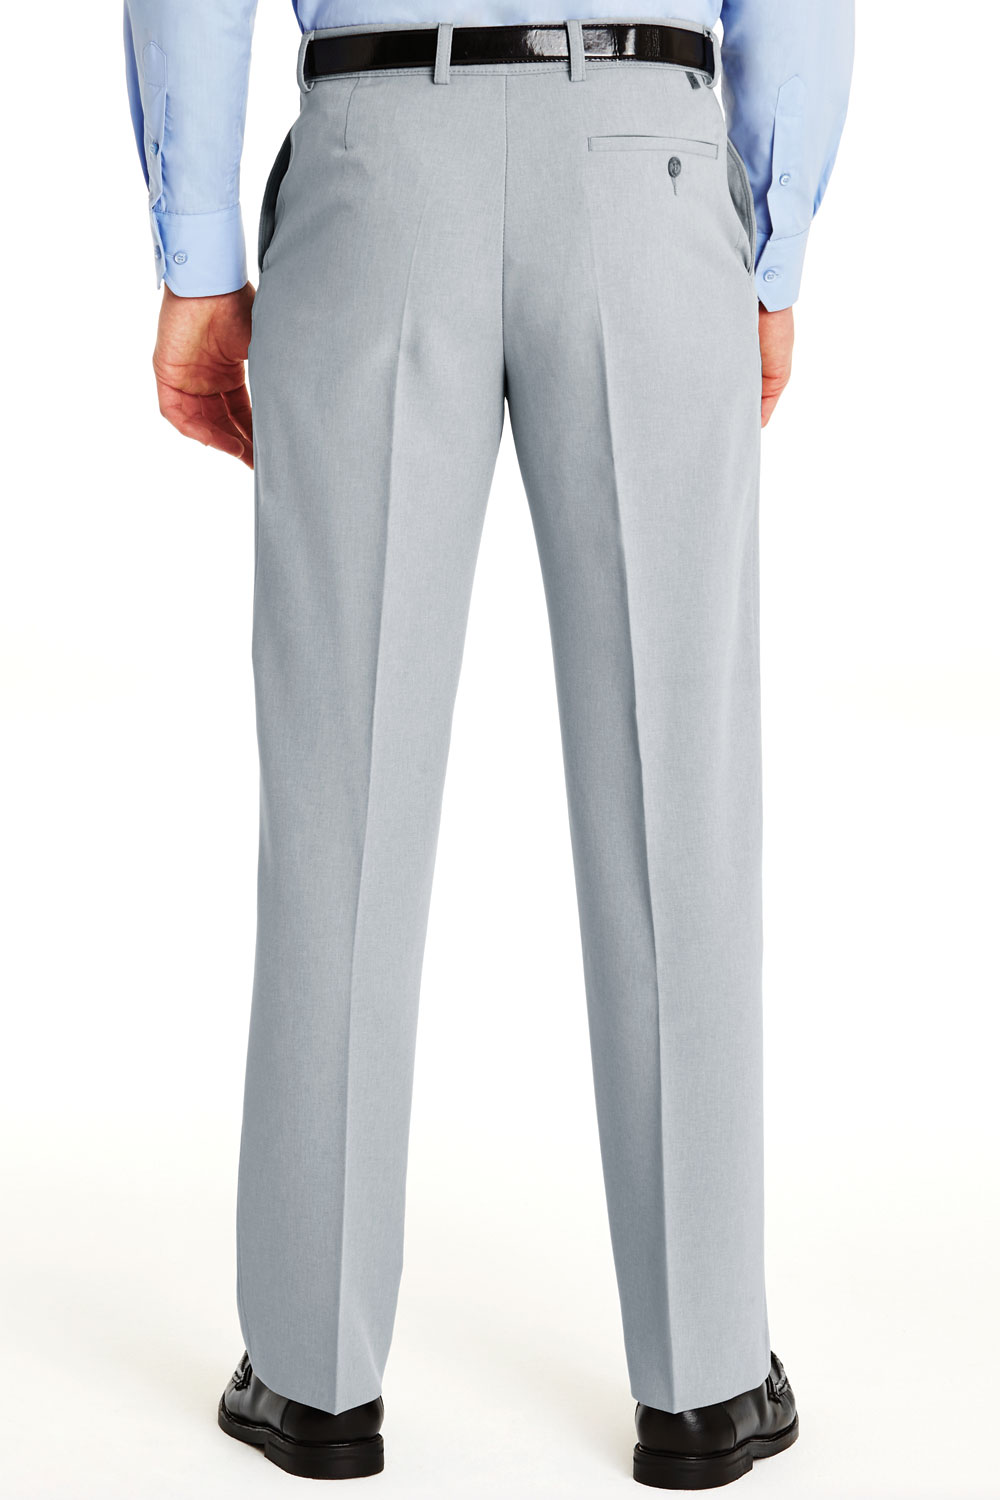 Mens-Farah-Slant-Pocket-Formal-Classic-Trouser-Pants thumbnail 31